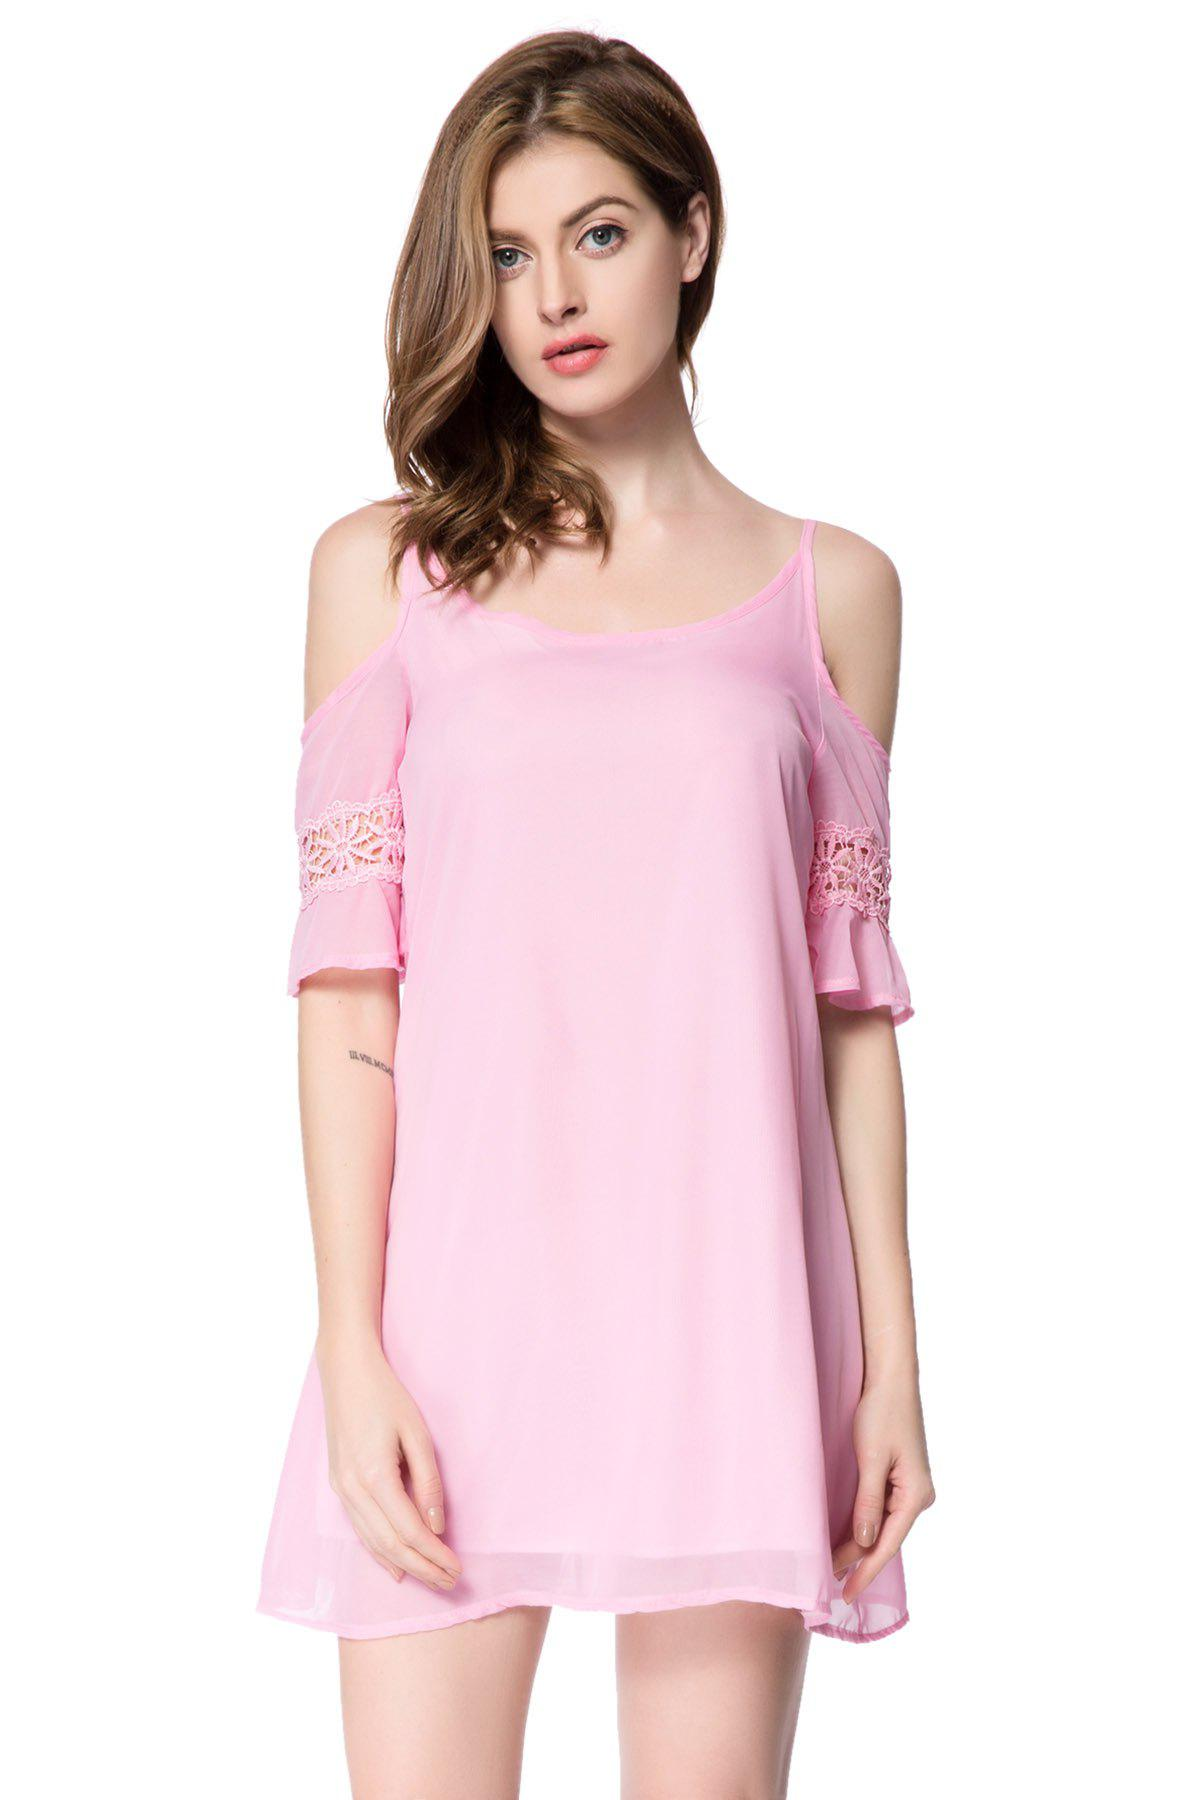 Casual Spaghetti Strap 3/4 Sleeve Solid Color Backless Women's Dress - PINK S